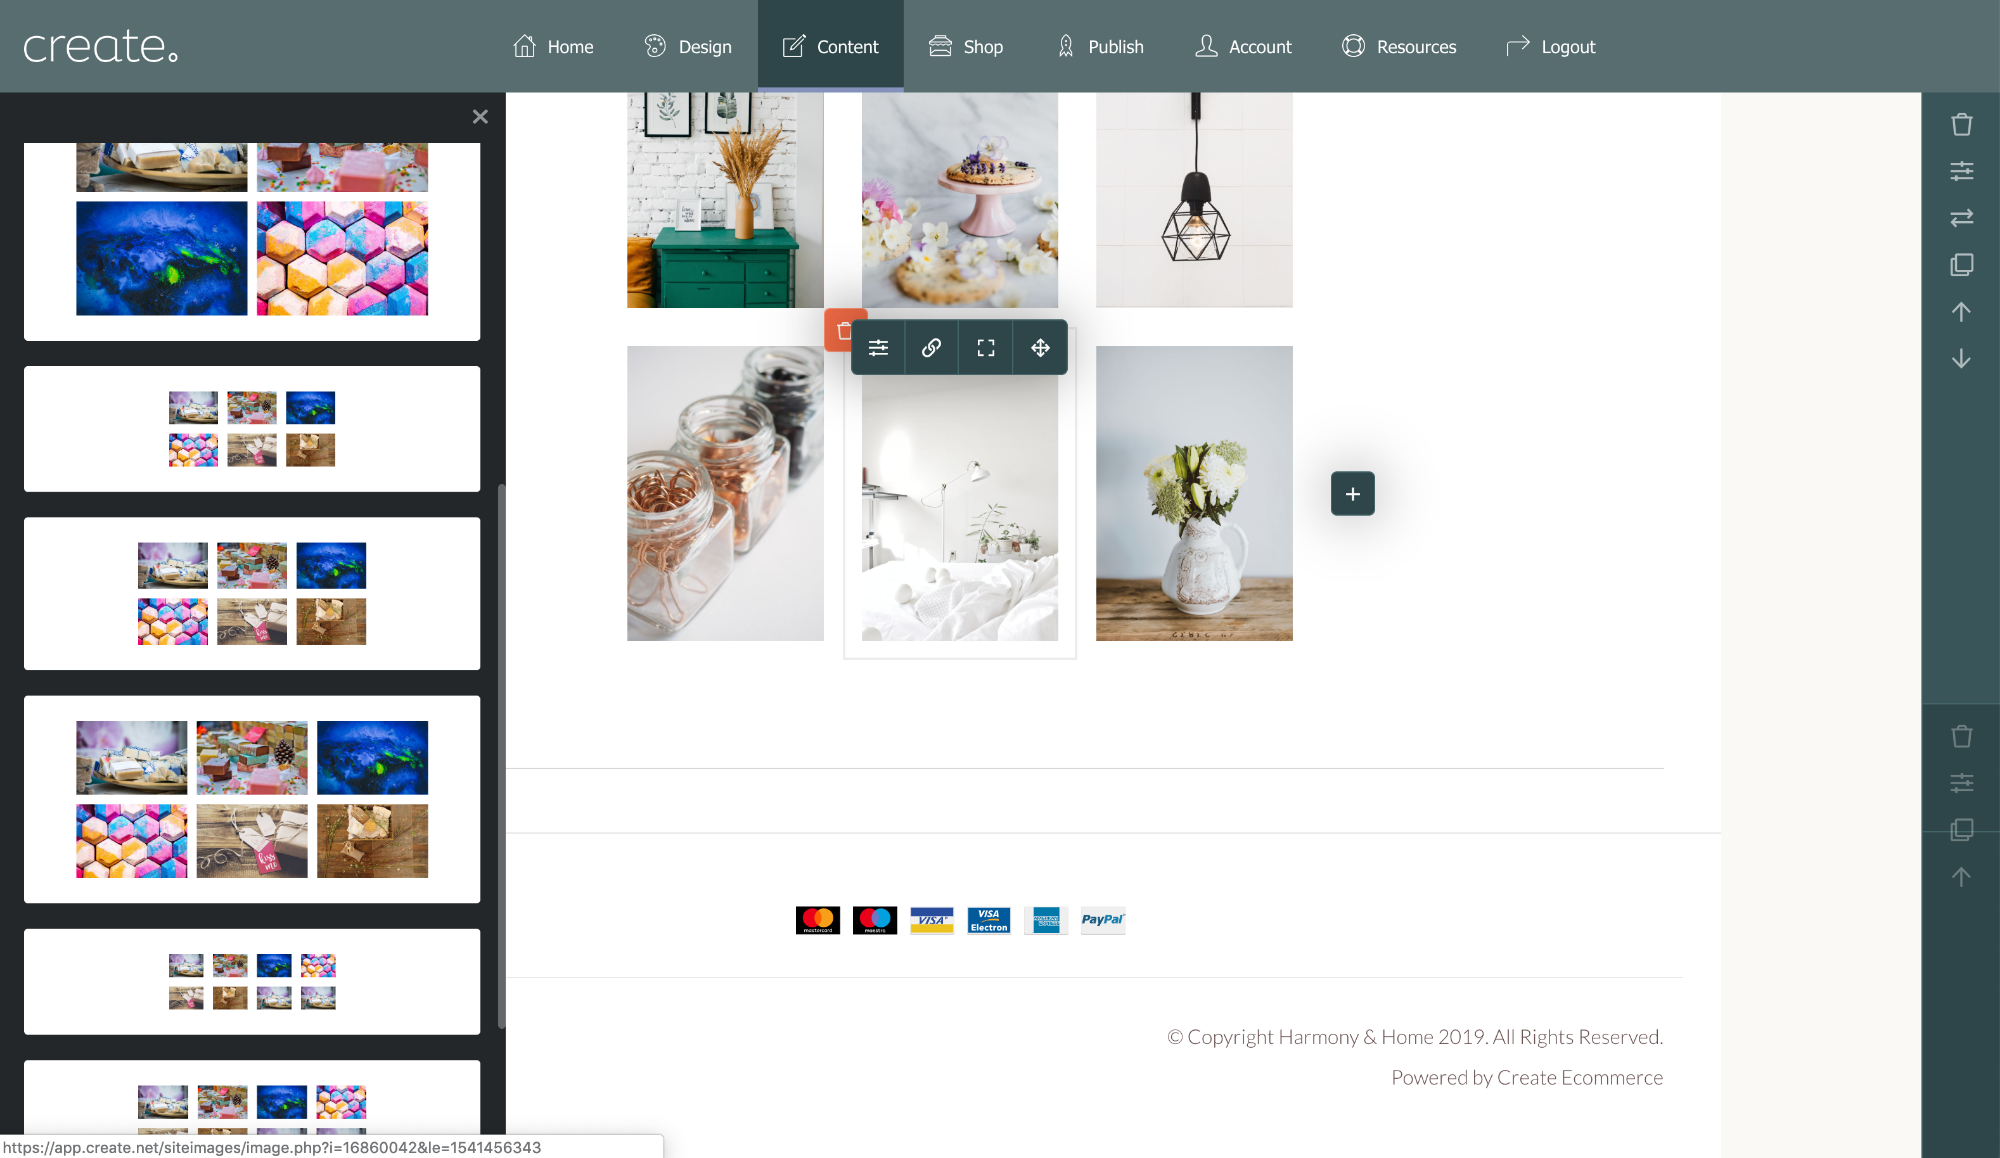 Design your gallery layout by choosing from the selection of gallery block styles